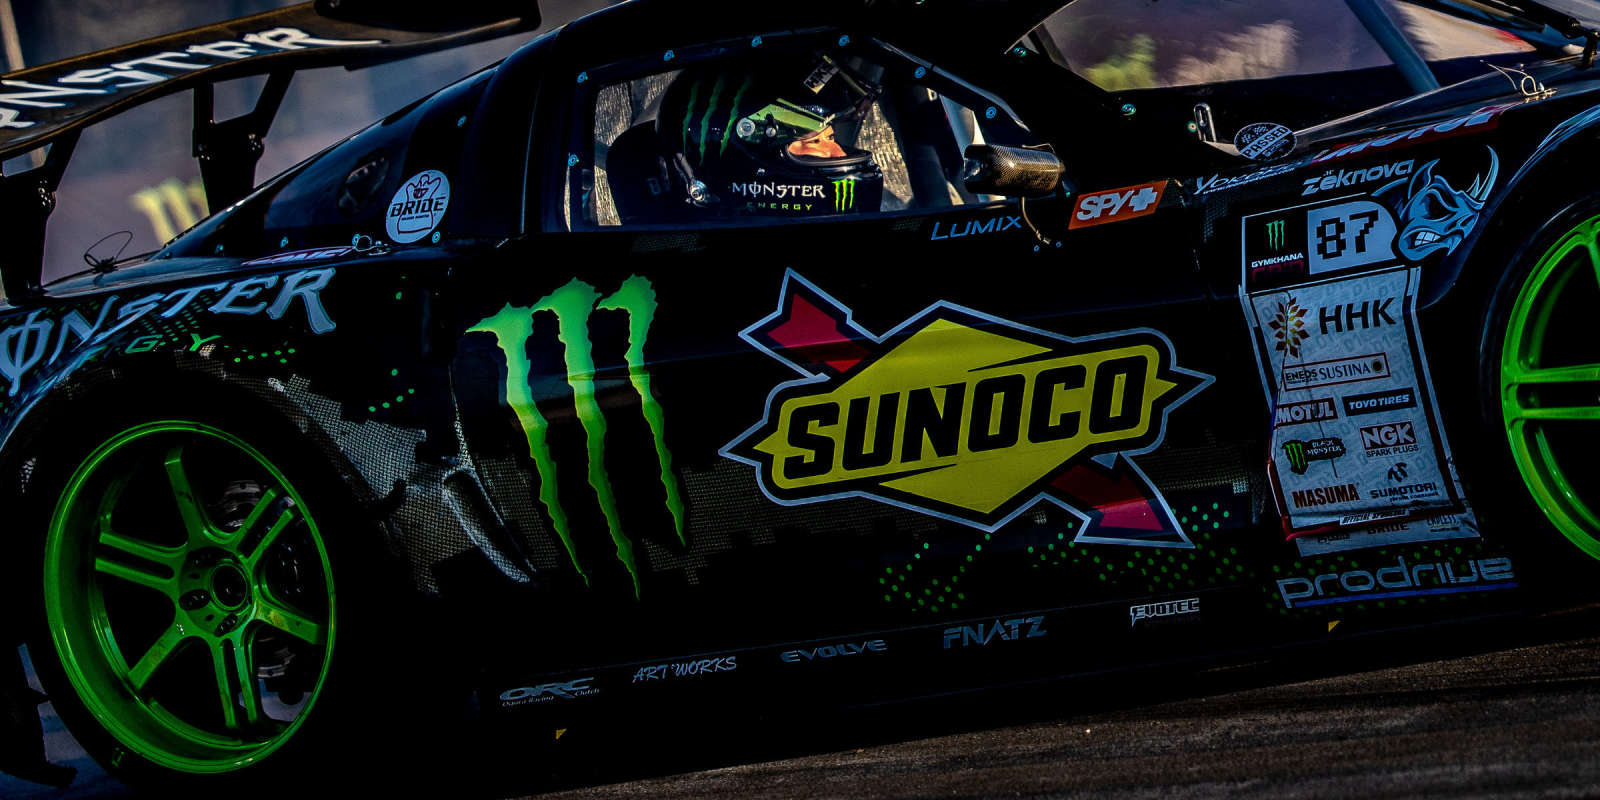 Shots from Gymkhana Grid on last day in South Africa